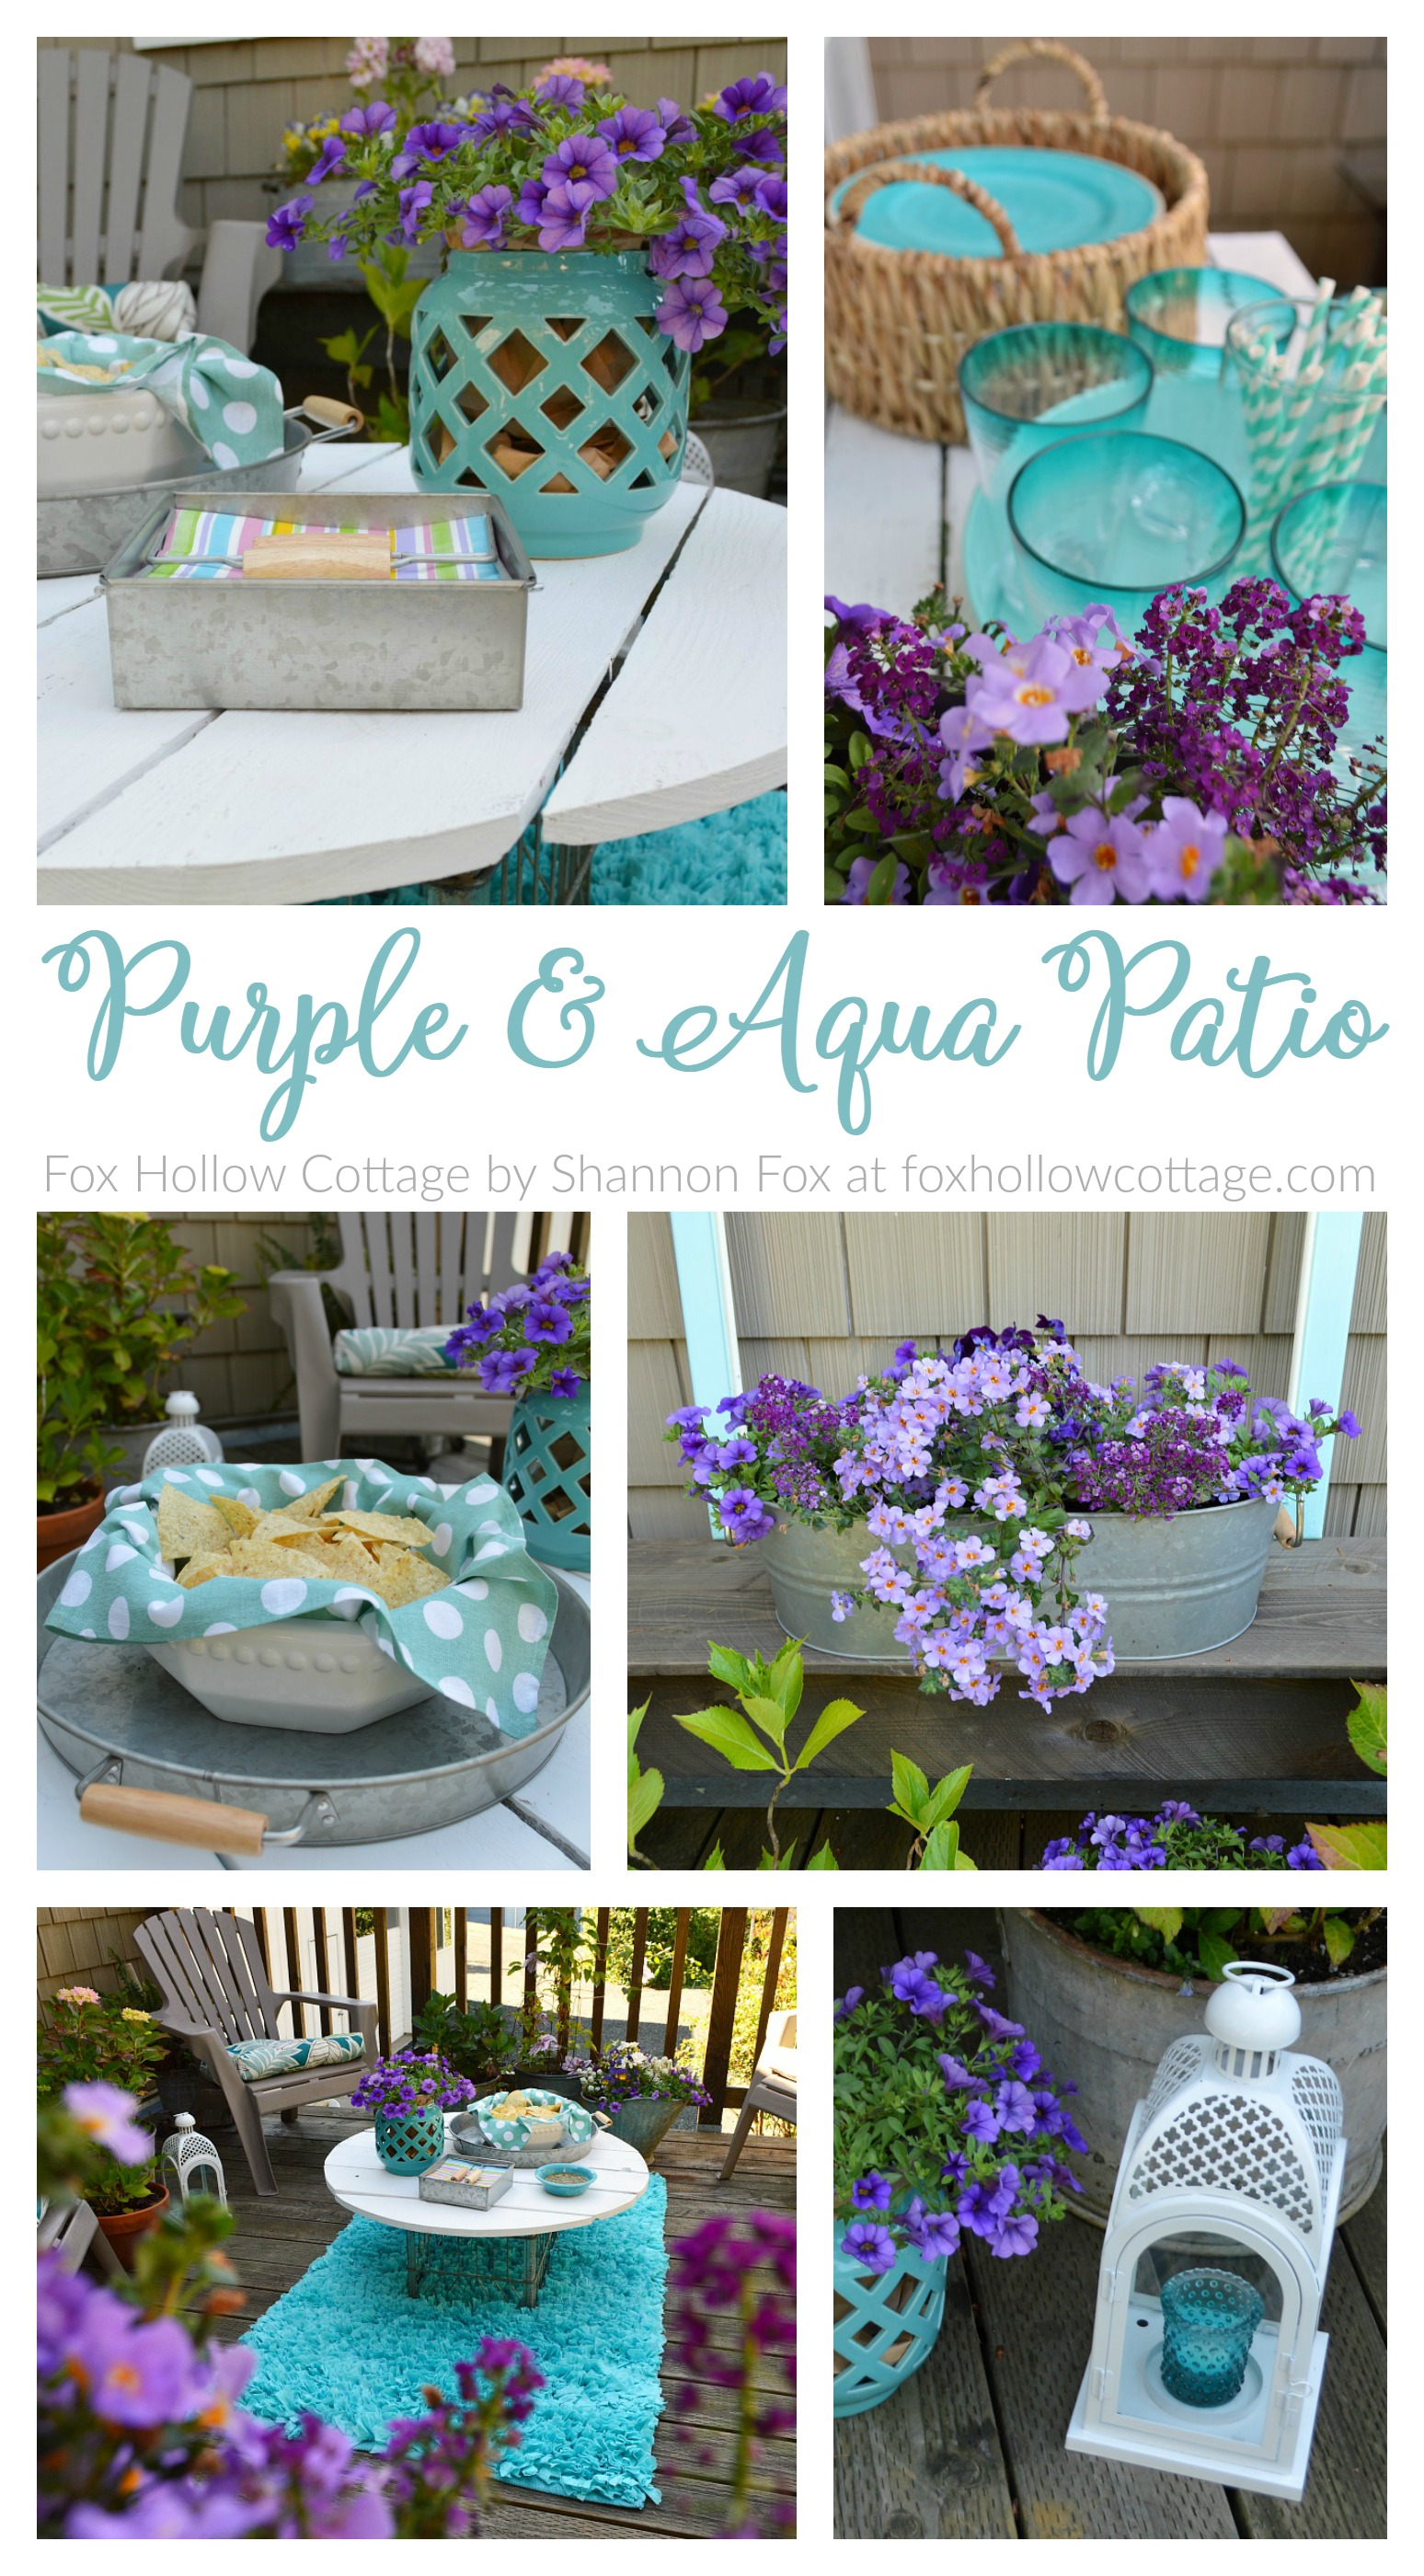 Purple and Aqua Patio Deck Refresh at foxhollowcottage.com - With budget friendly Better Homes and Gardens goods, from Walmart